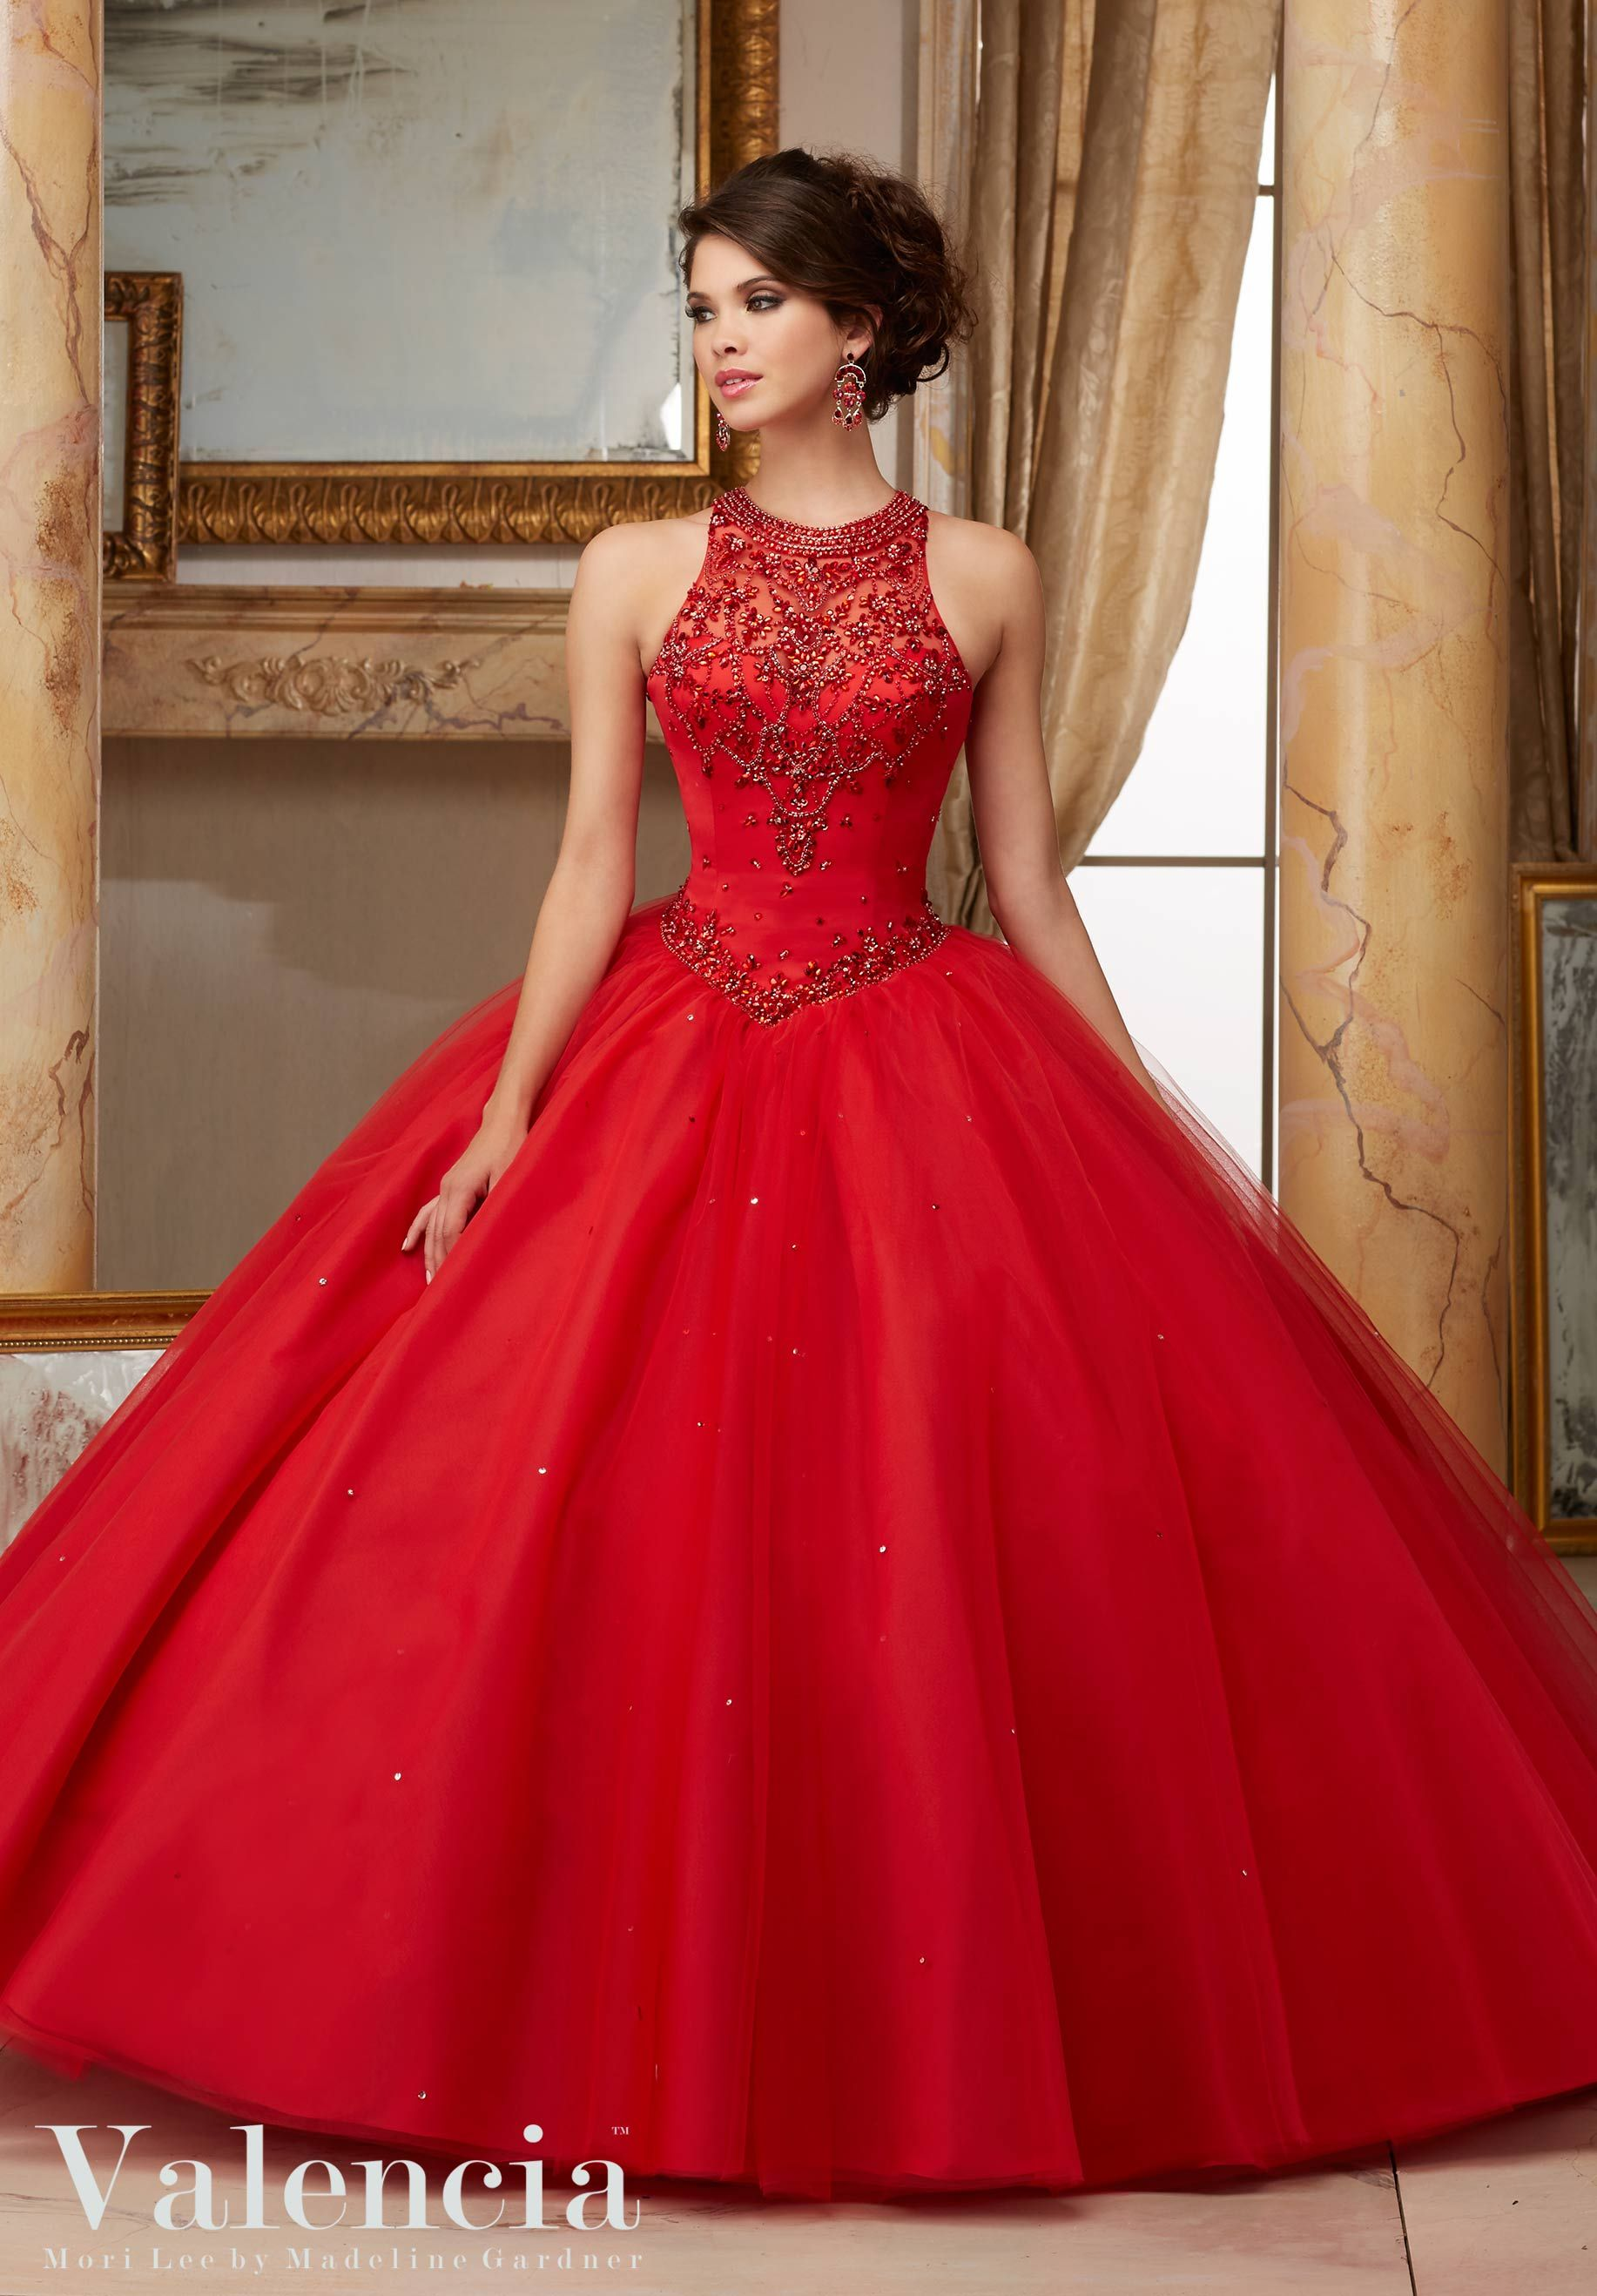 b18cefee8da Jeweled Beaded Satin Bodice on Tulle Ball Gown Quinceanera Dress Designed  by Madeline Gardner. Matching Bolero Jacket. Colors Available  Capri